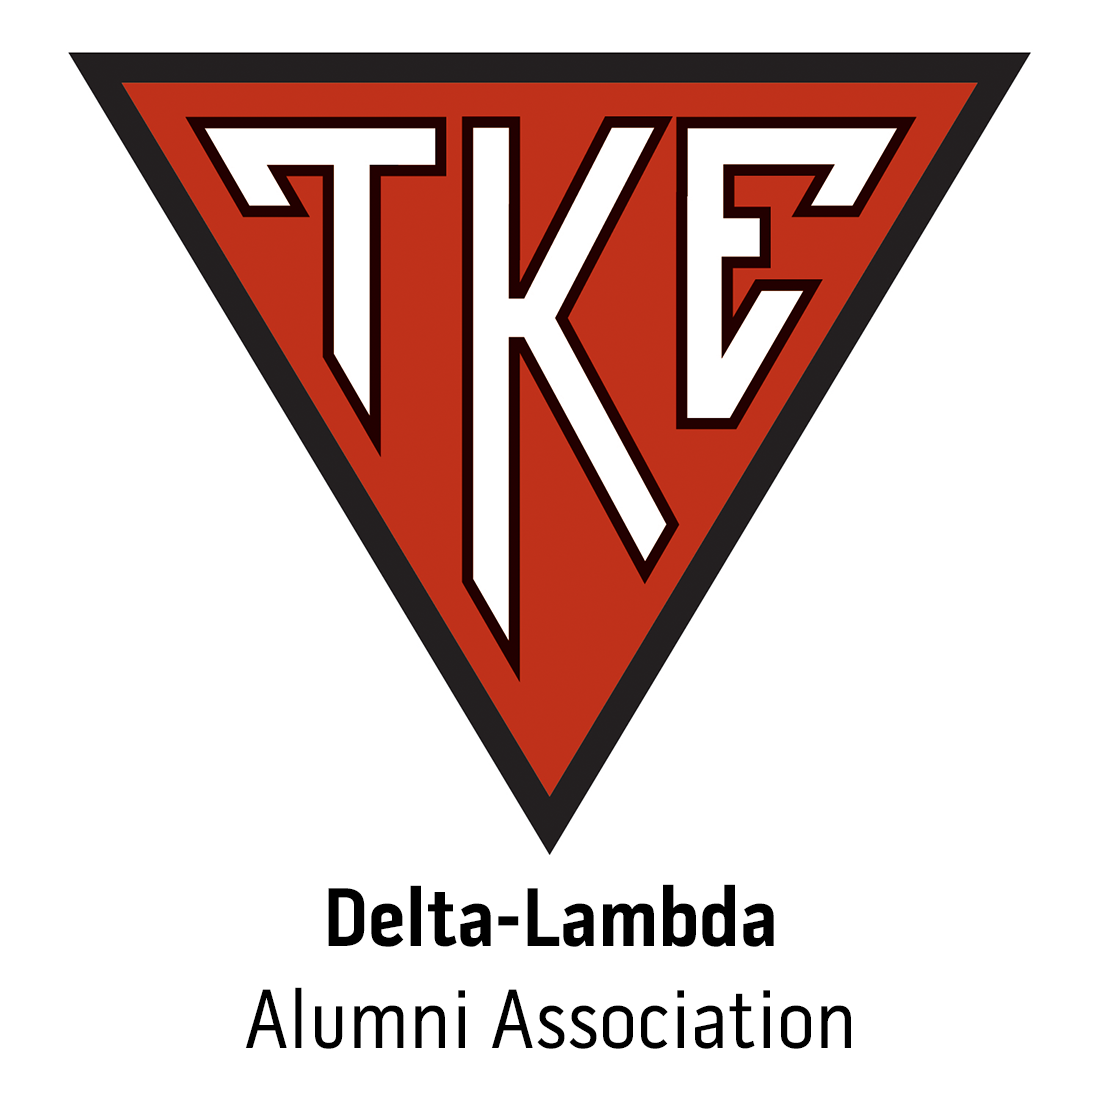 Delta-Lambda Alumni Association at University of Central Missouri